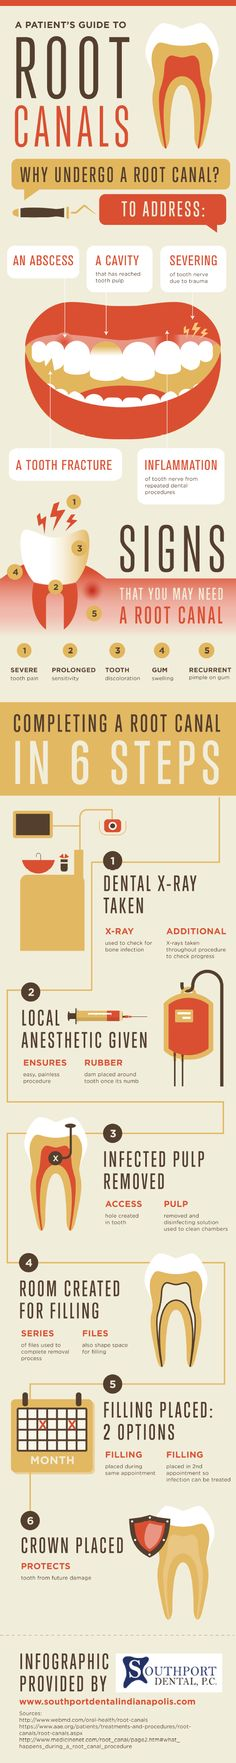 If a tooth's nerve is inflamed after repeated dental procedures, root canal treatment may be necessary to provide relief. Get more details about root canal treatment by clicking over to this infographic from a dentist in Des Moines.